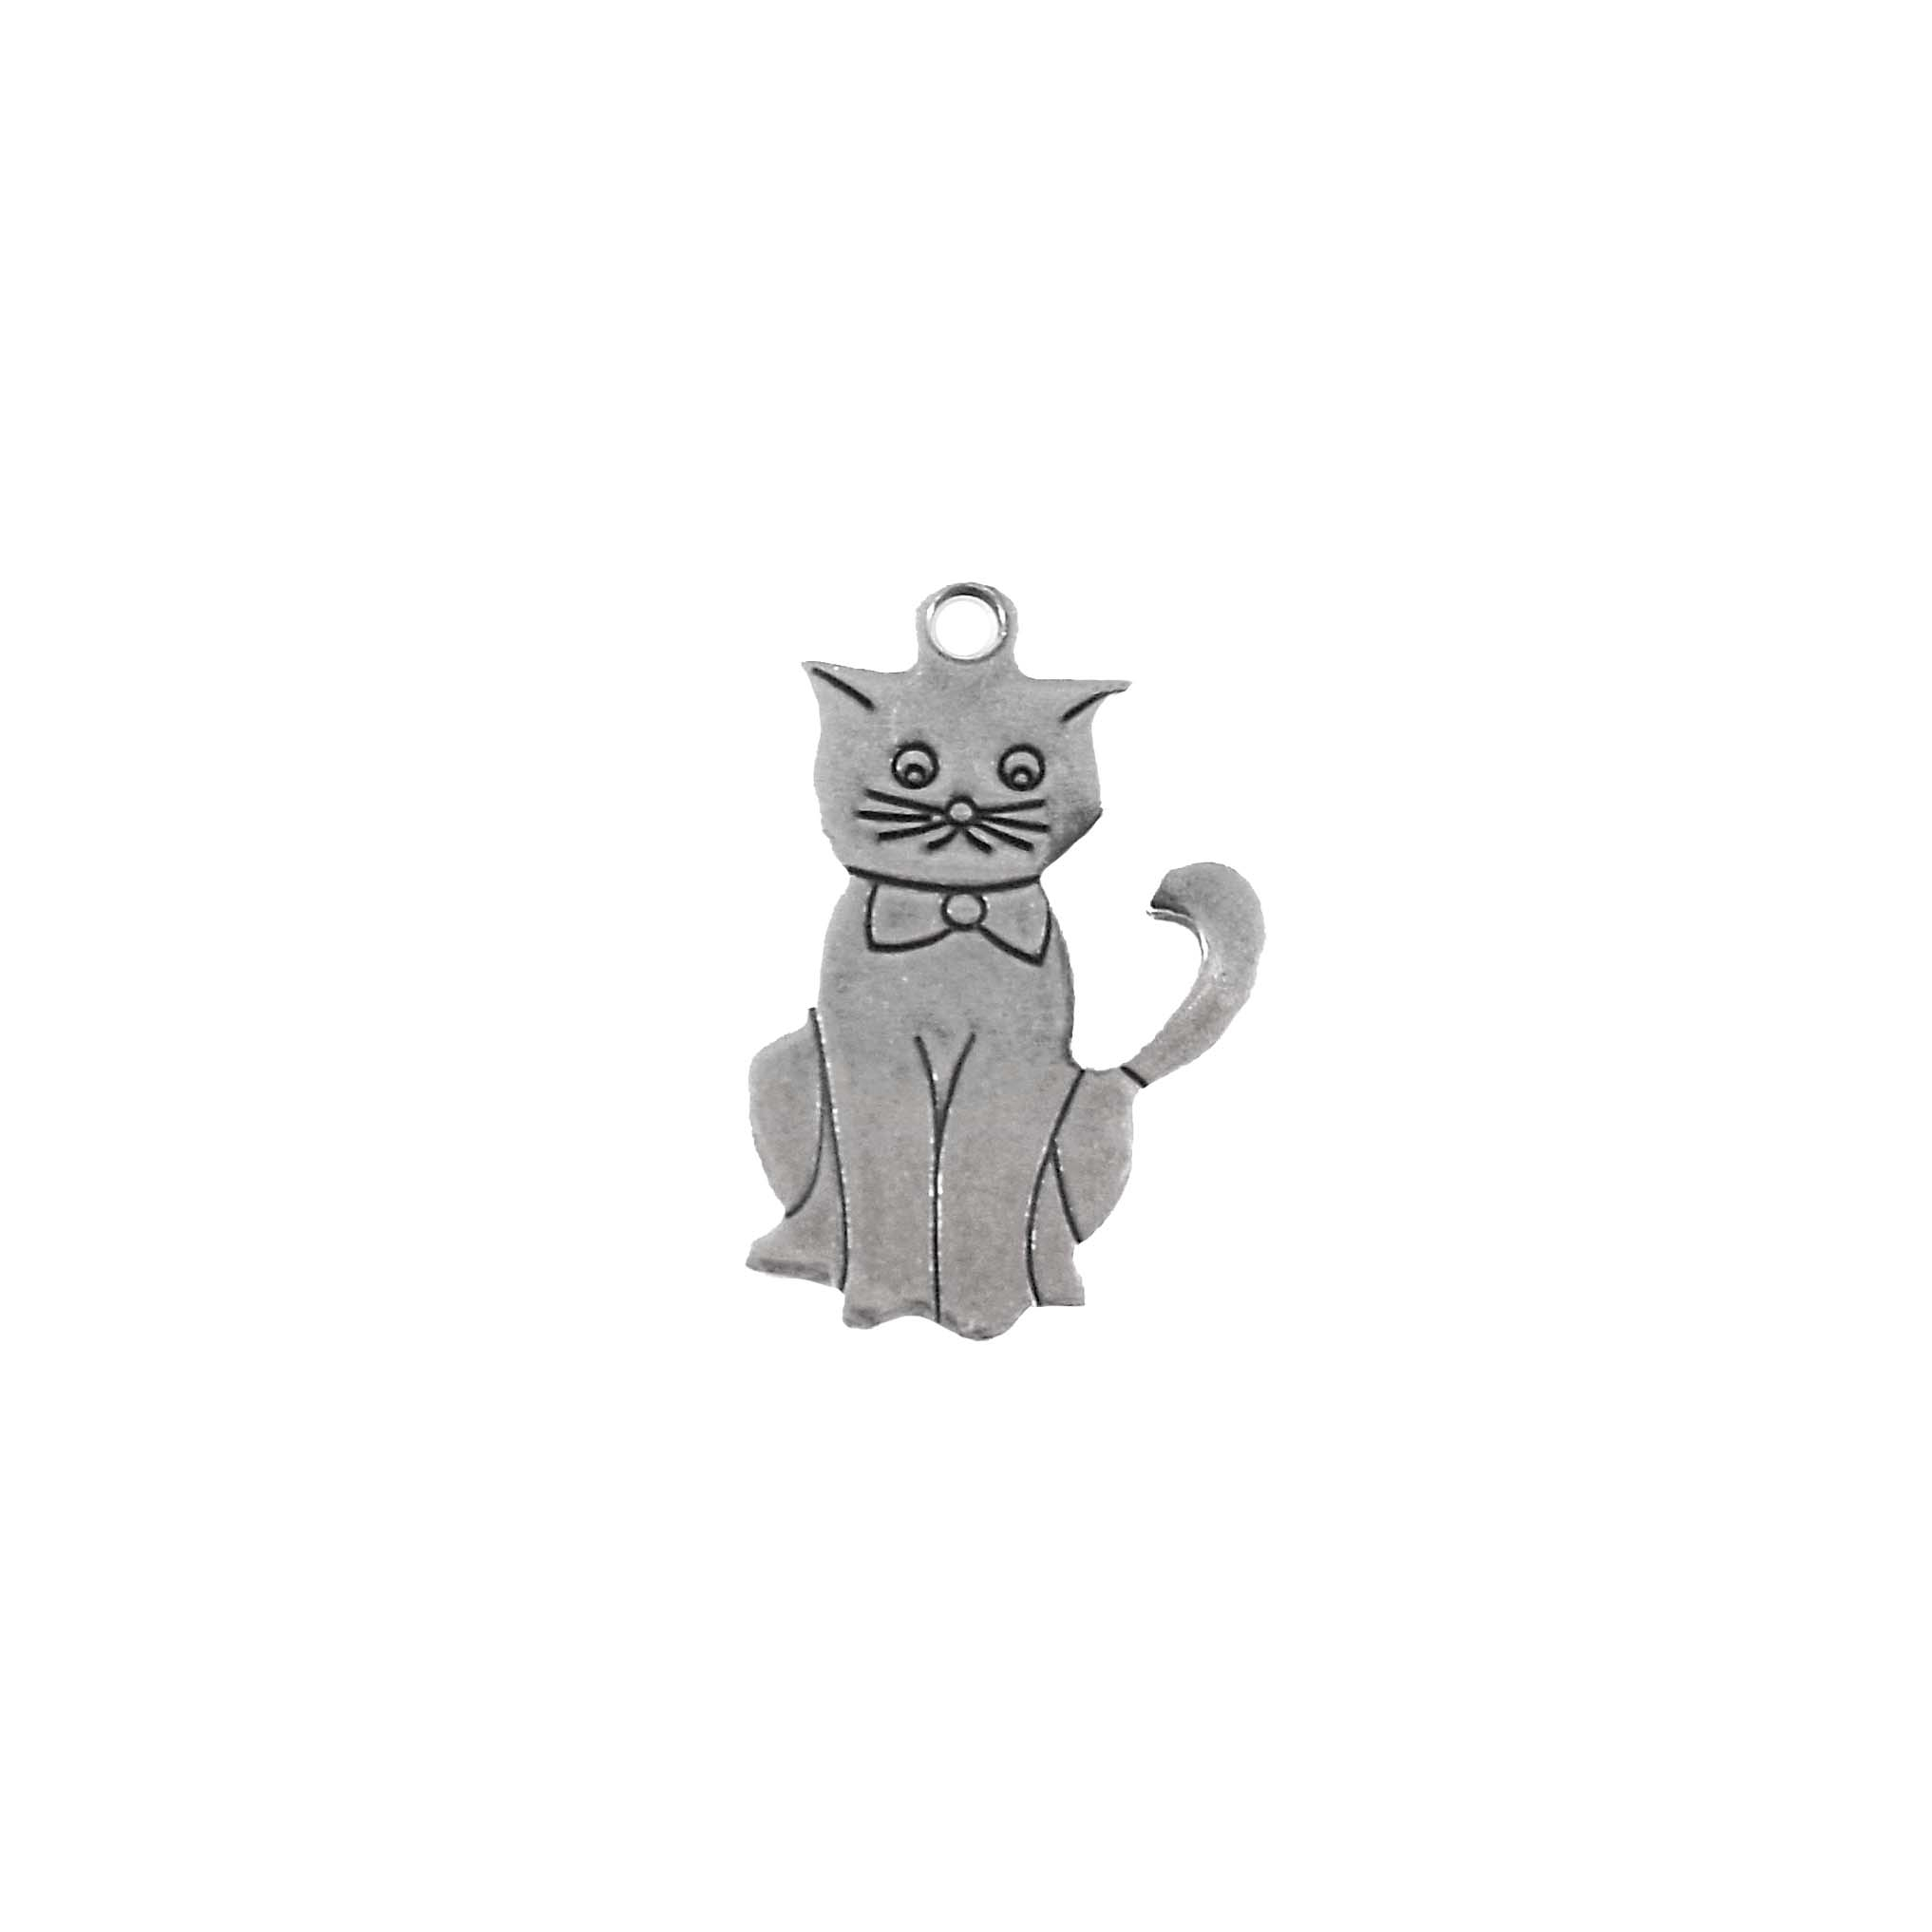 kitty charms, kitty with bow tie, jewelry making